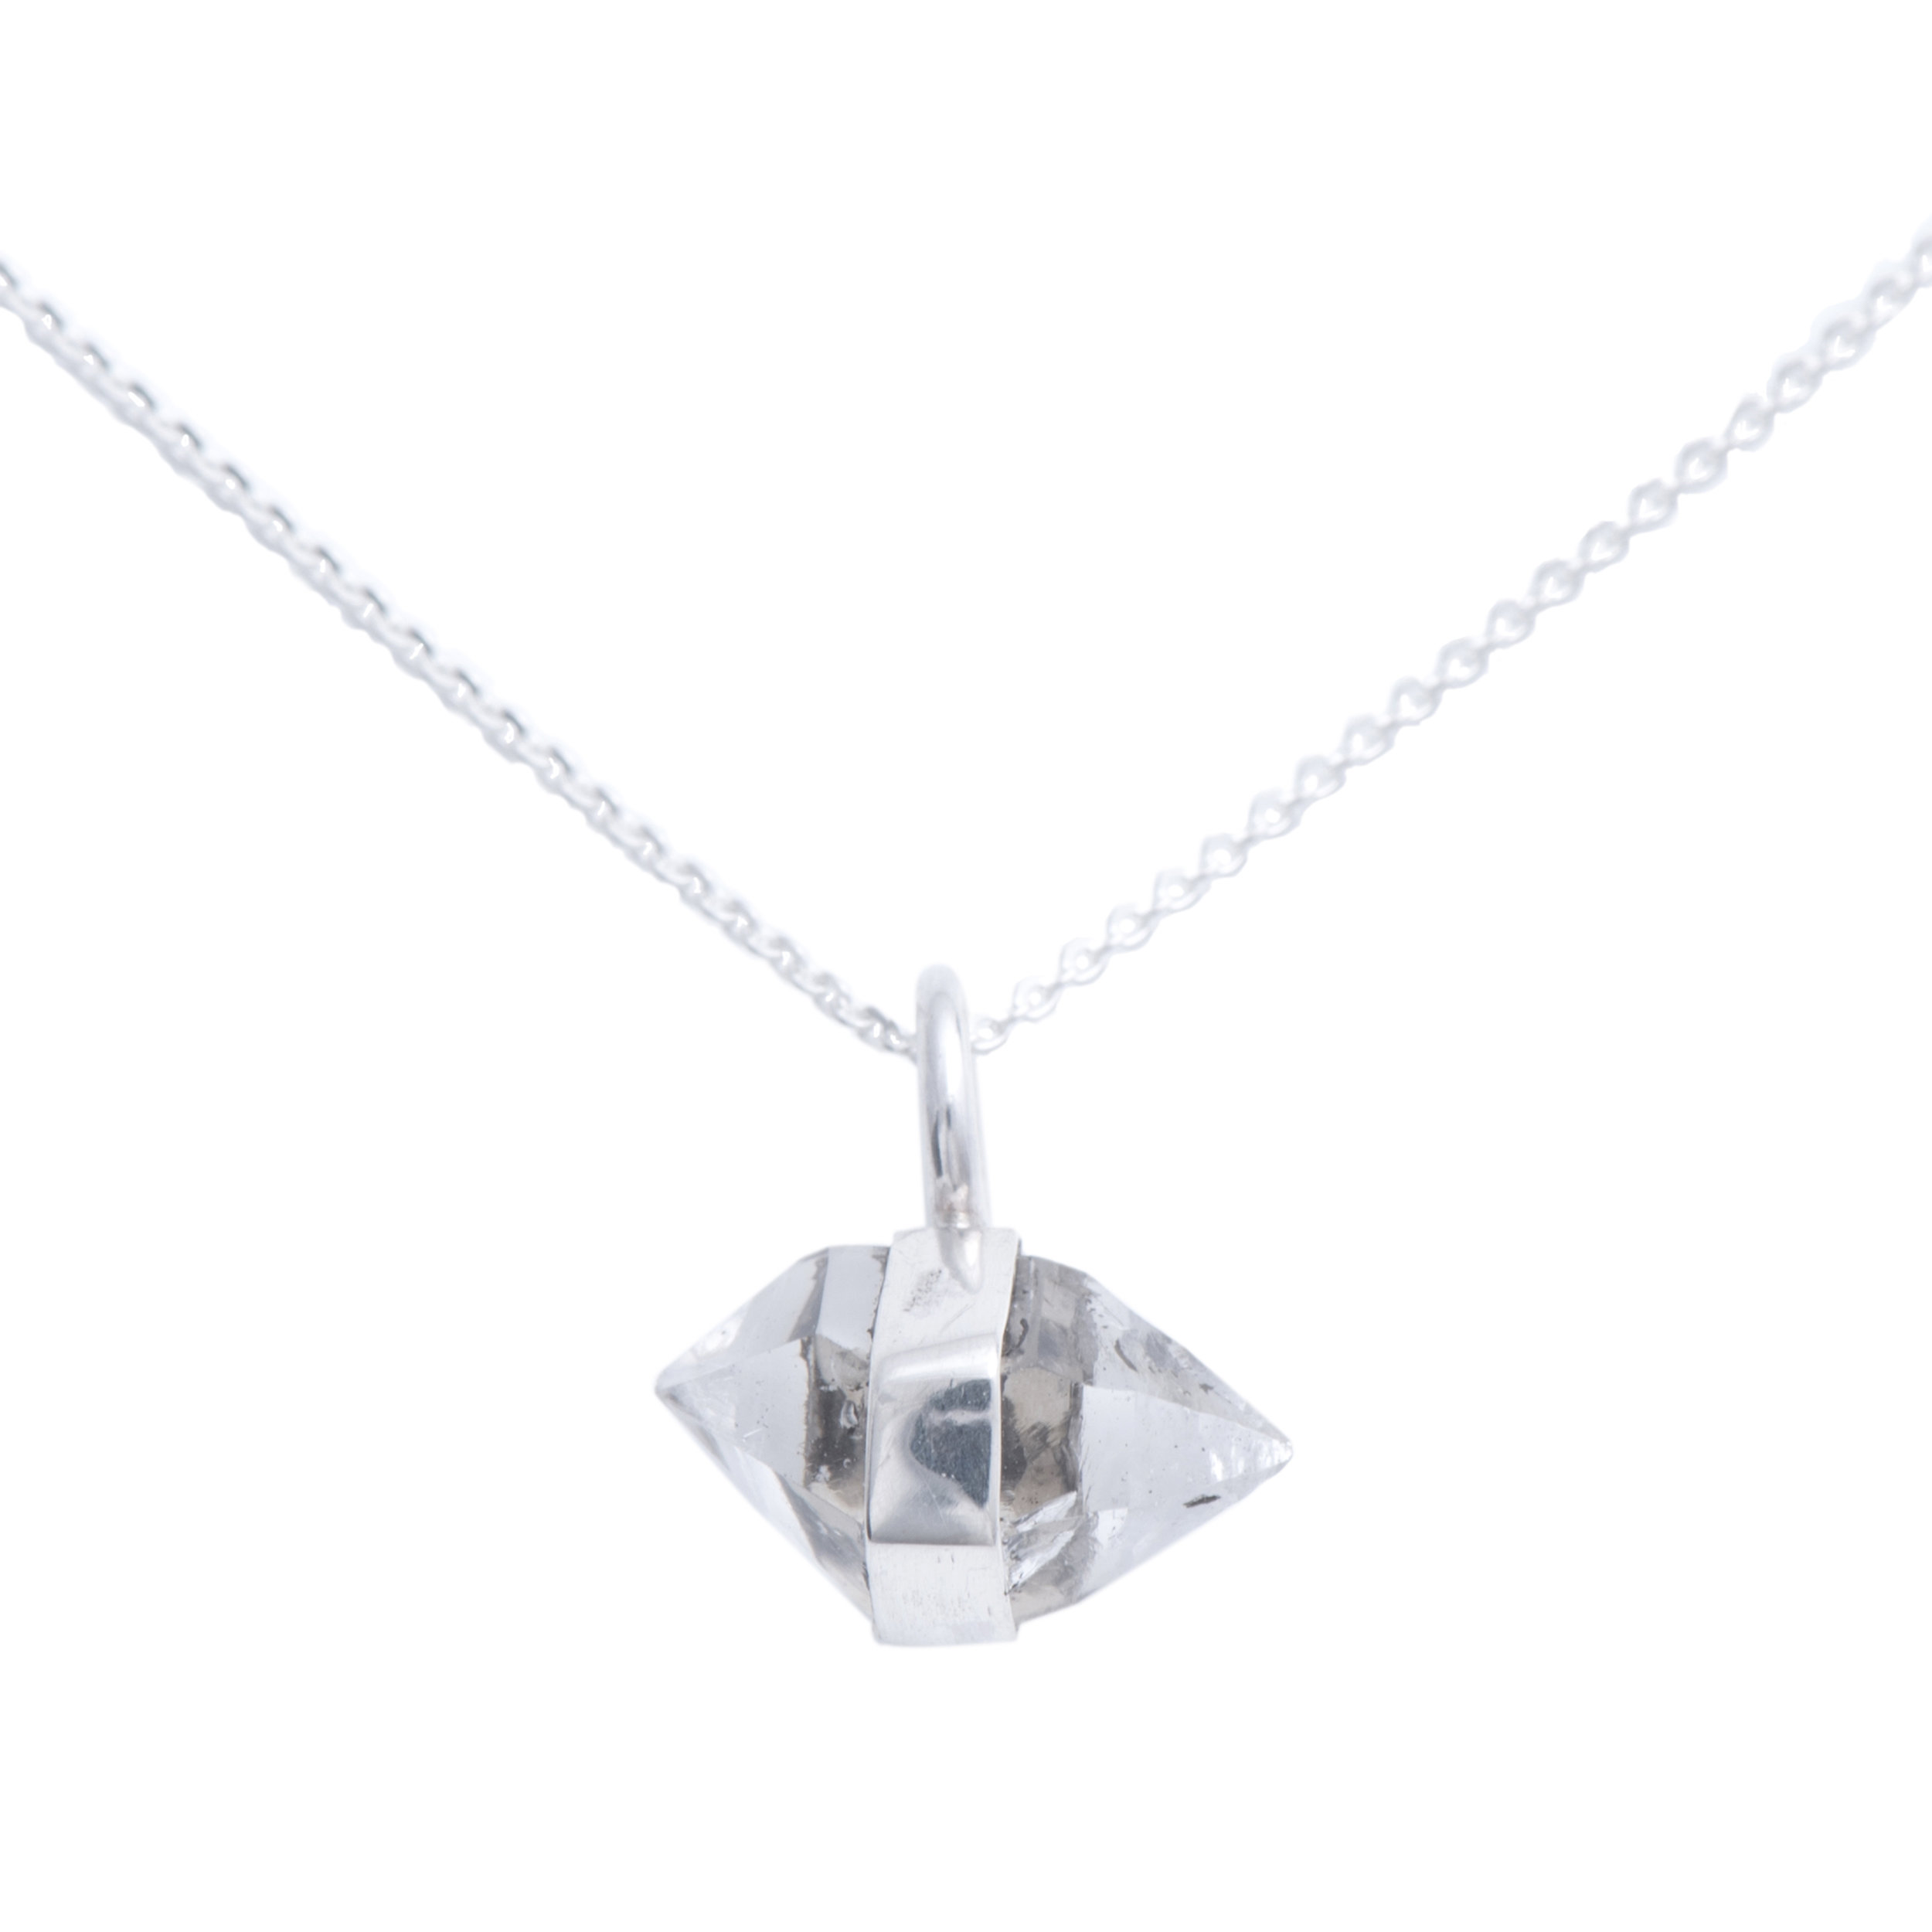 EYESEEi. AAVRE necklace in silver and one raw Herkimer Diamond Crystal. The word means success and happiness in the Southern Sami dialect. Chain length: 43 cm Price: 580 SEK Photo: Naomi Pongolini